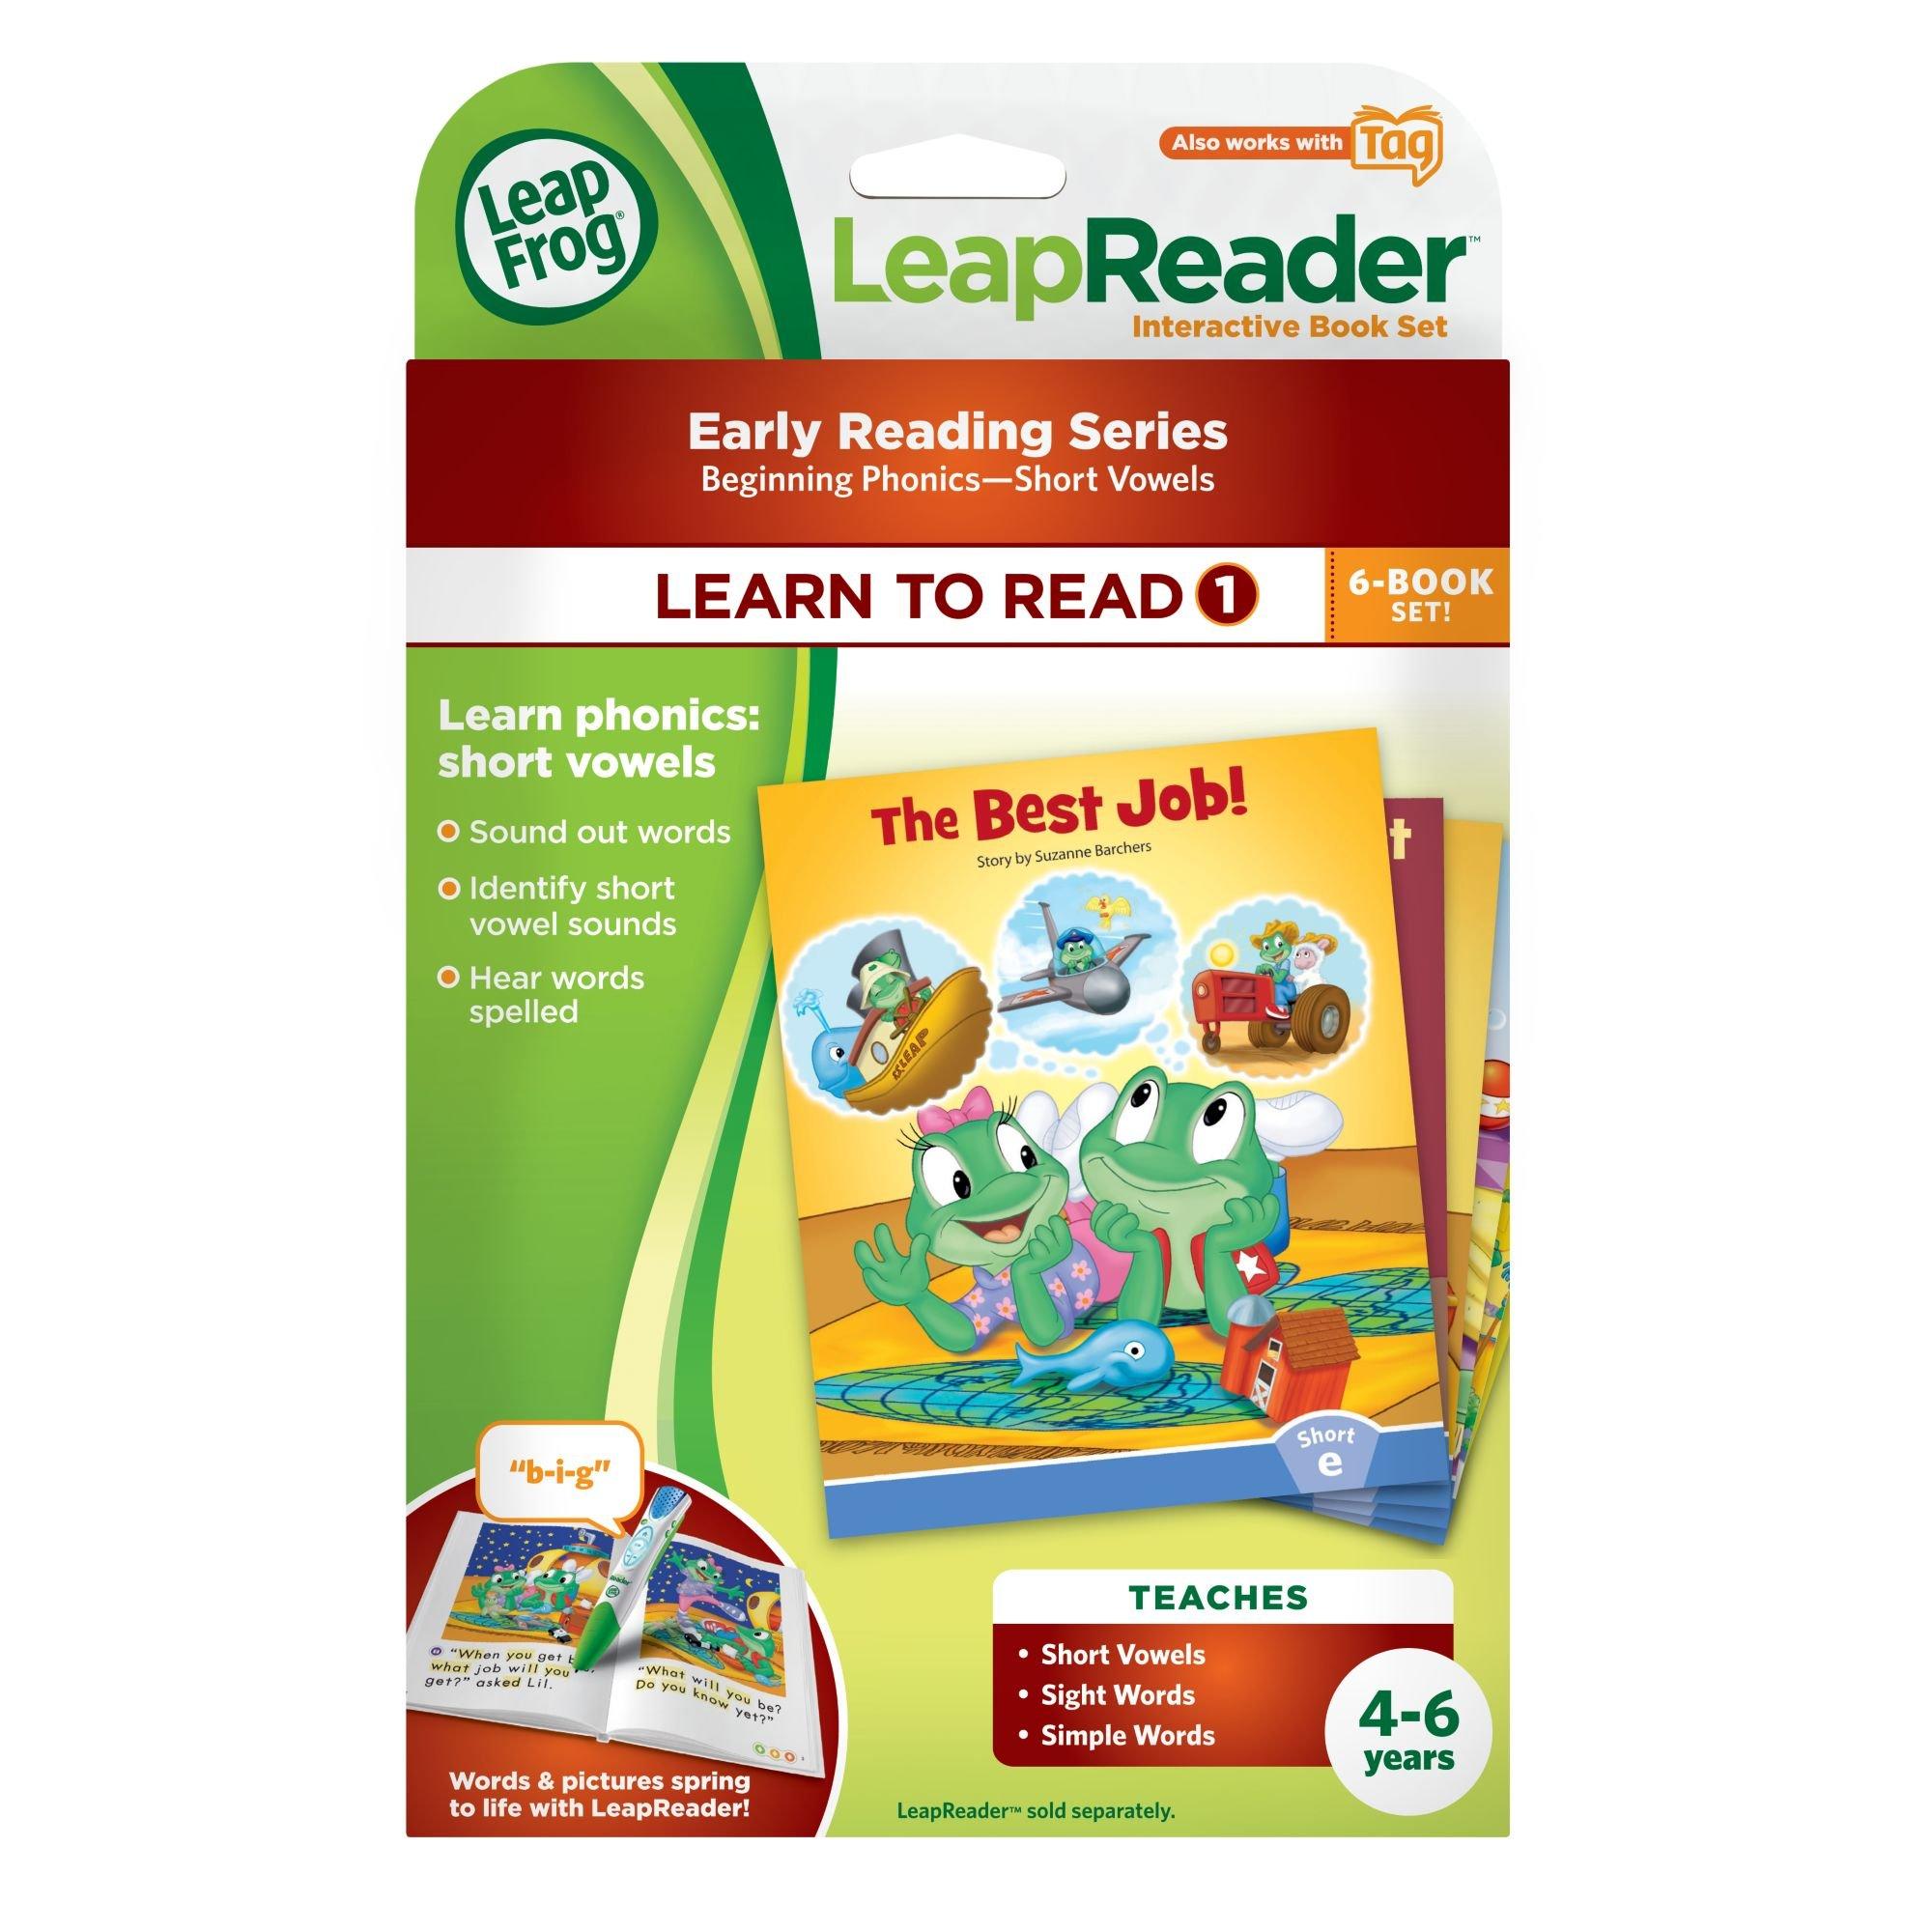 LeapFrog LeapReader Learn to Read, Volume 1 (works with Tag) by LeapFrog (Image #8)